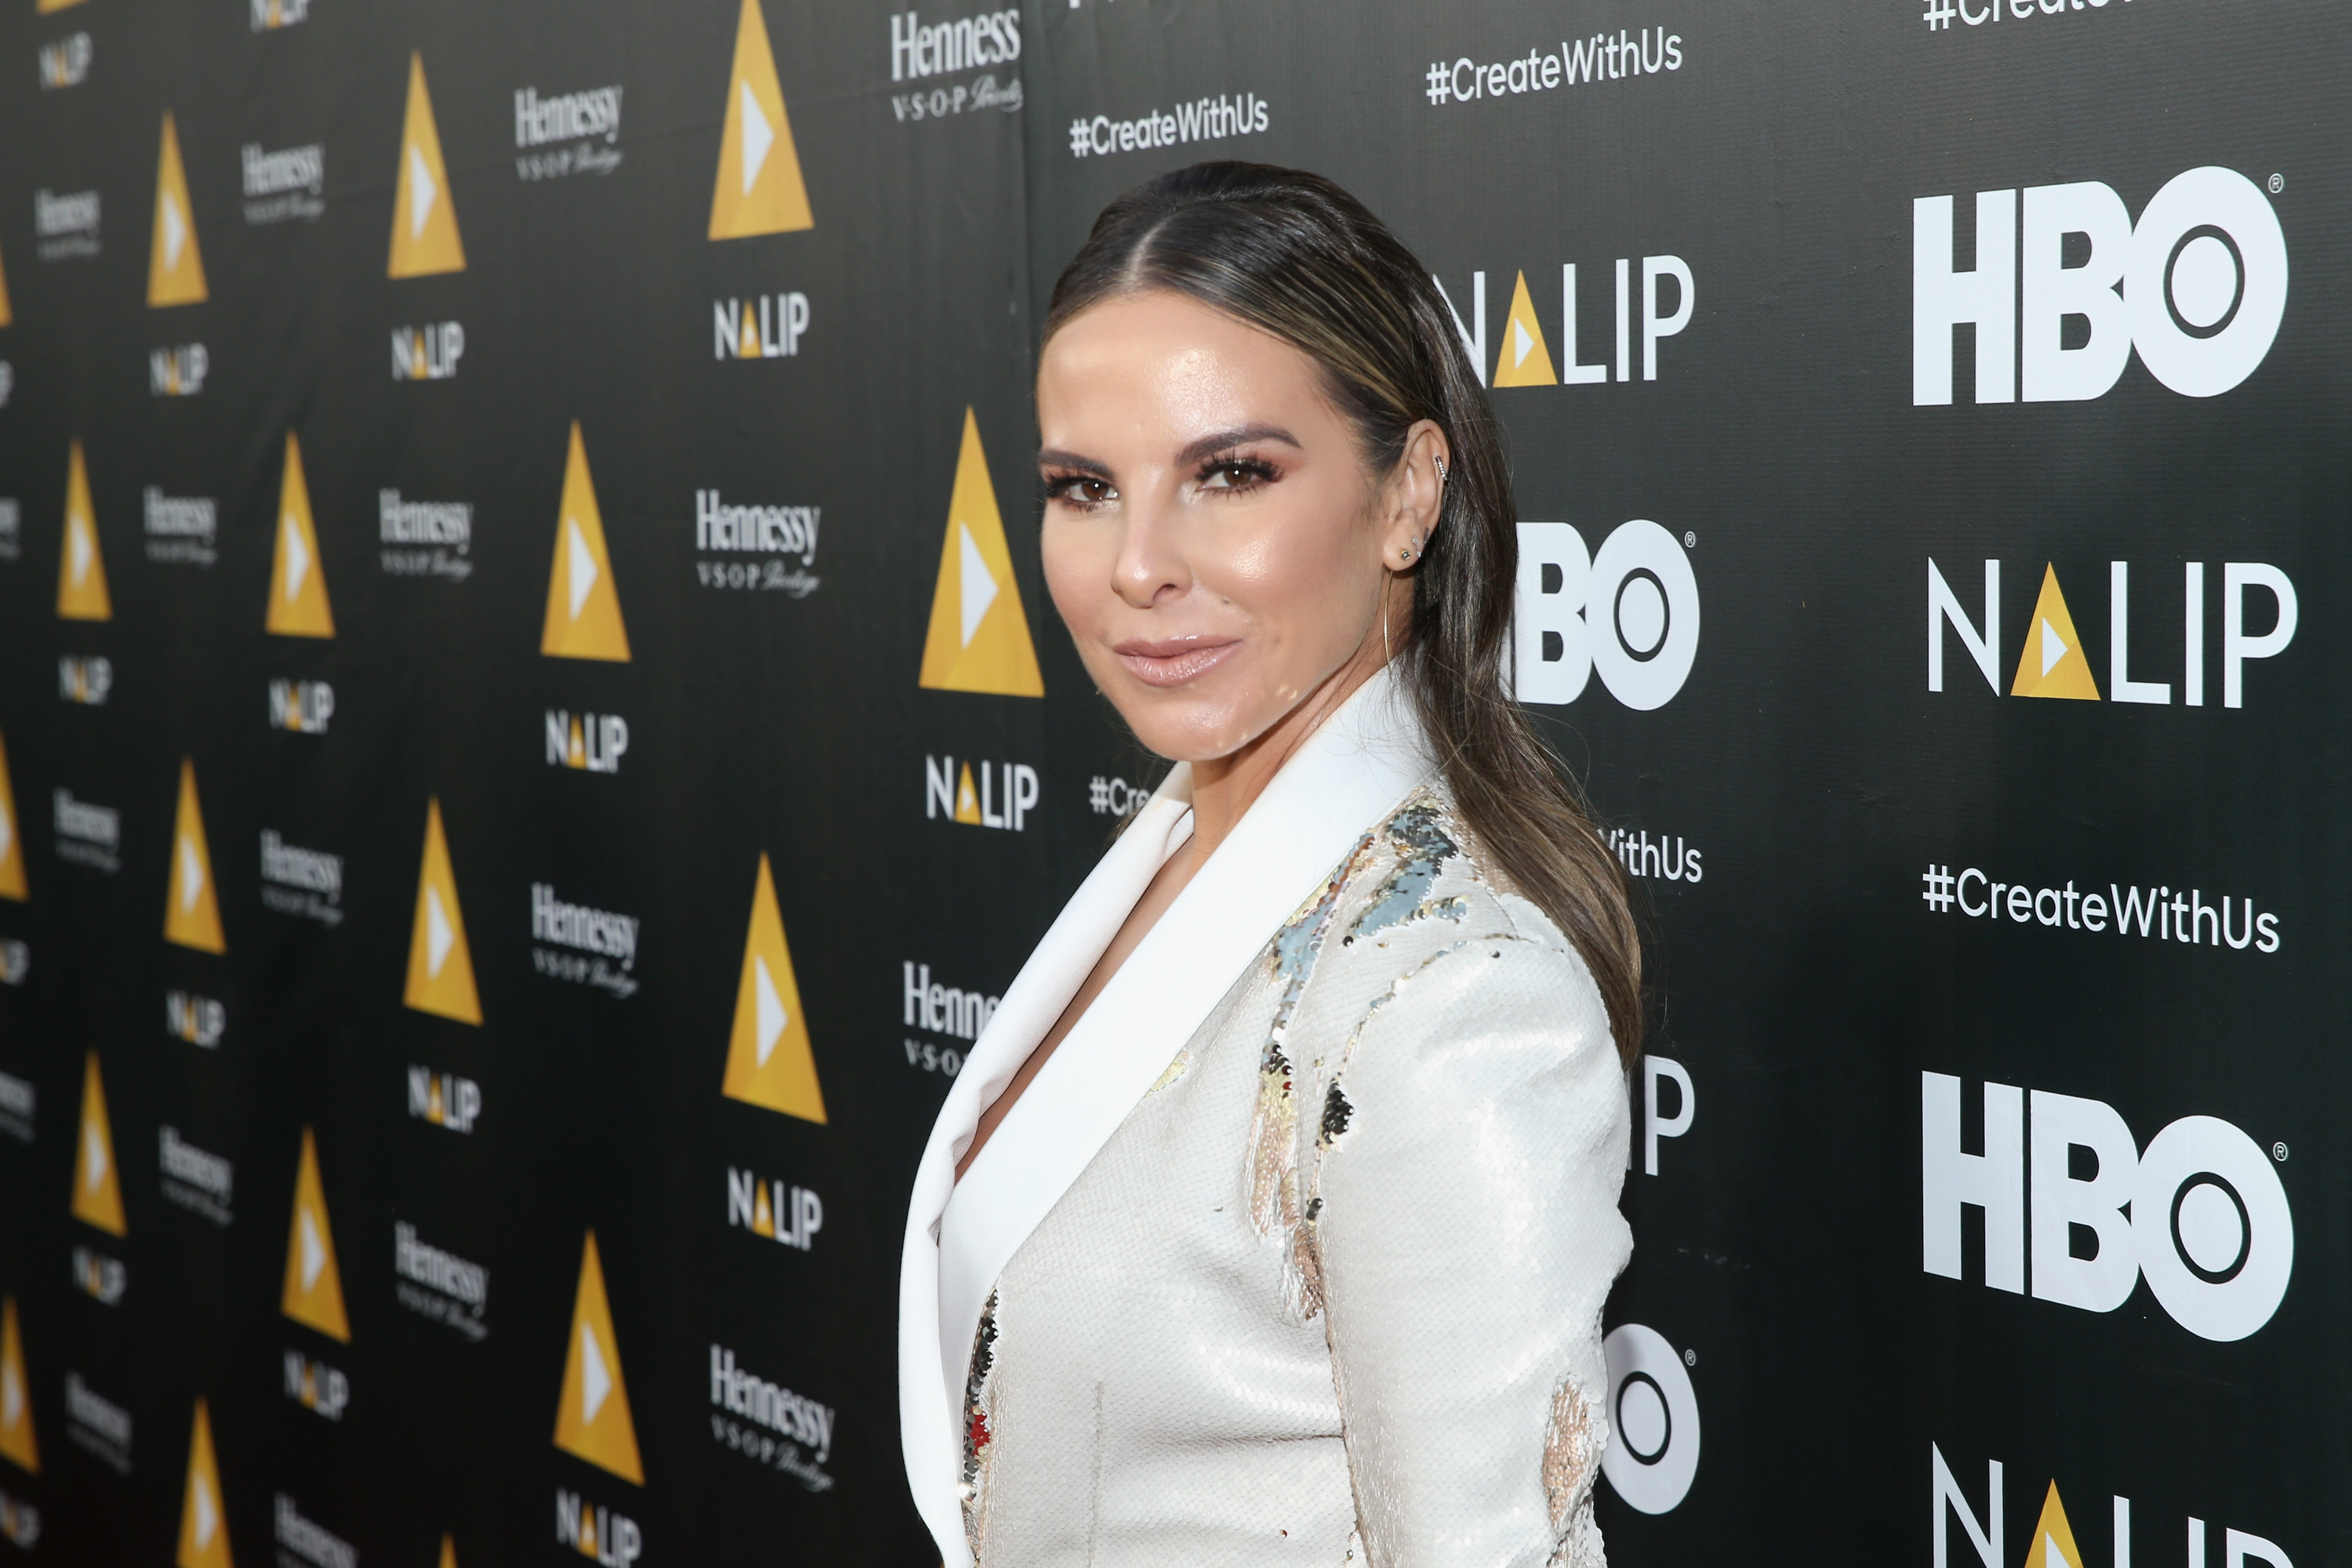 Kate del Castillo Spotted Filming 'La Reina del Sur' Season 2 in Belize